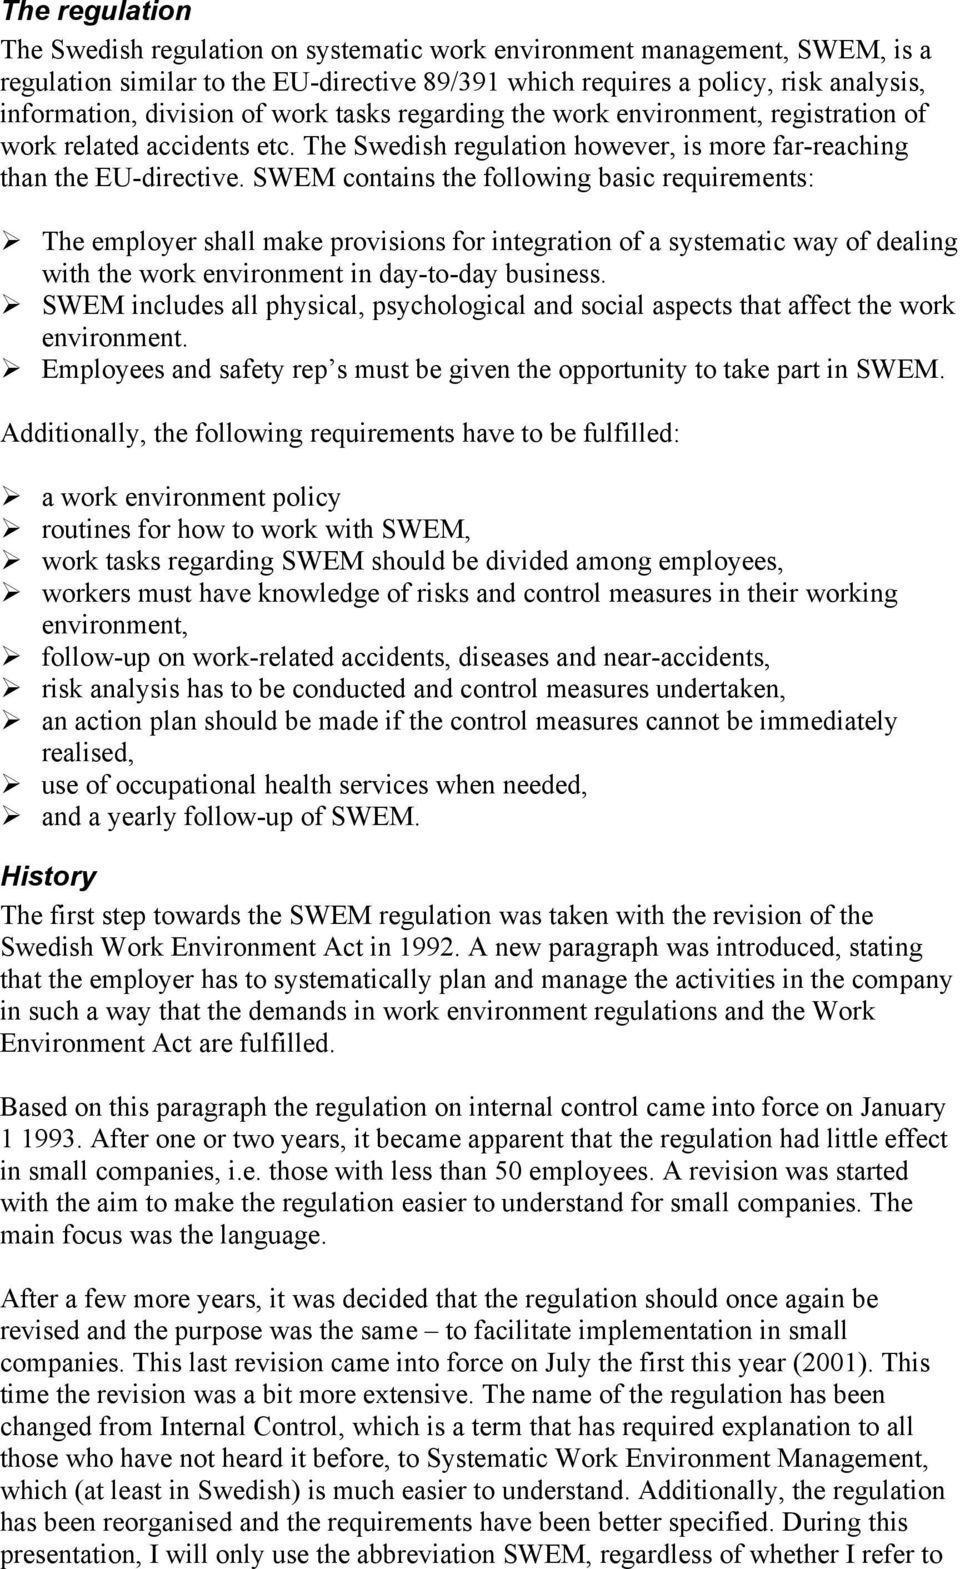 SWEM contains the following basic requirements: The employer shall make provisions for integration of a systematic way of dealing with the work environment in day-to-day business.